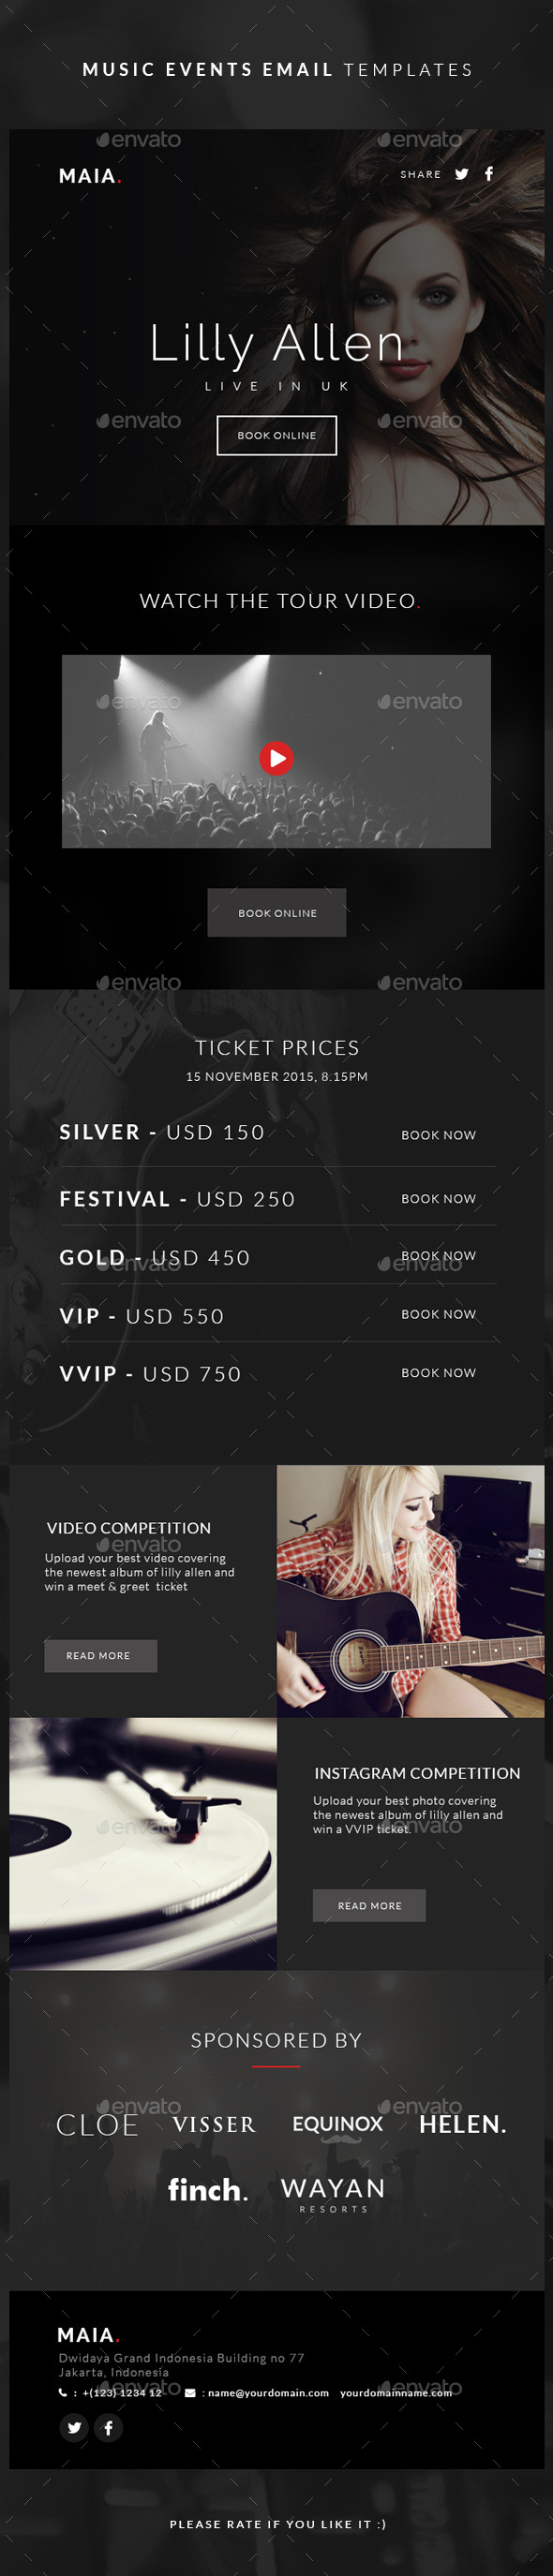 GraphicRiver Music Events Email Templates Maia 11270691